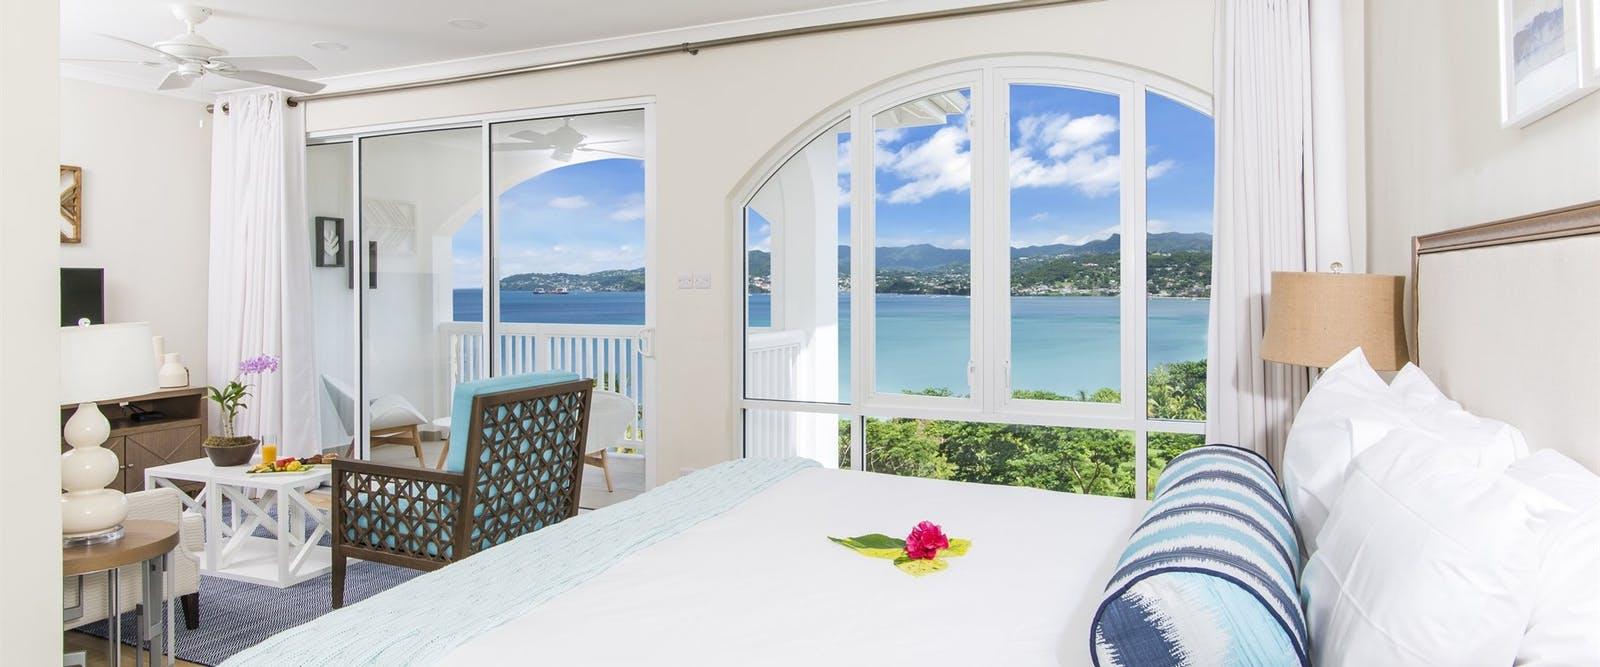 Bedroom Suite at Mount Cinnamon, Grenada